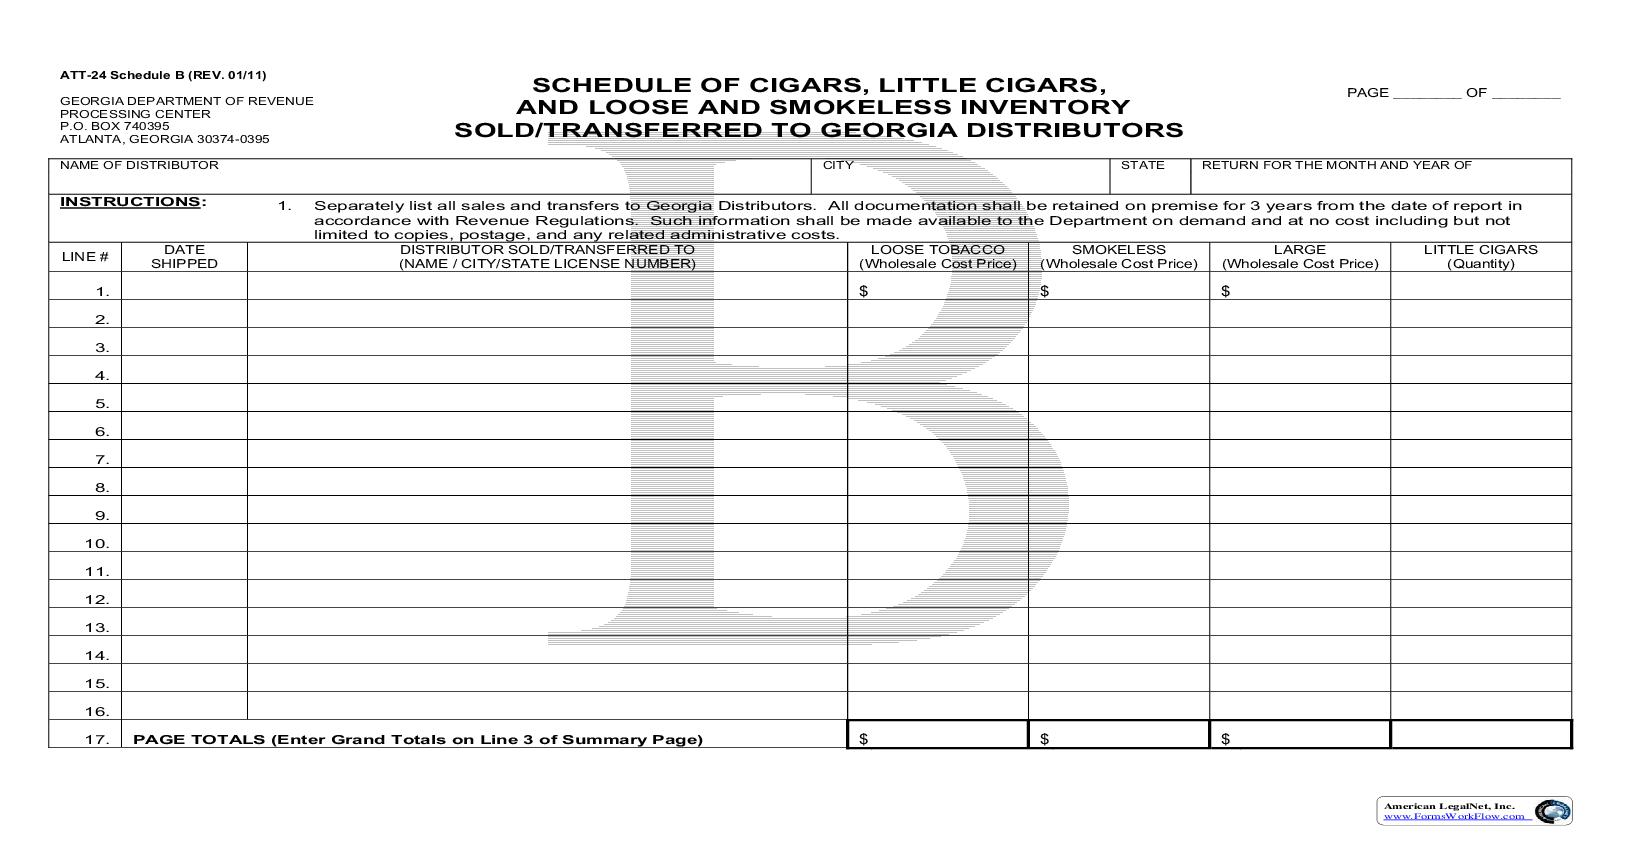 Schedule Of Loose And Smokeless Inventory Sold To GA Distributors {ATT-24-SCHEDULE B}   Pdf Fpdf Doc Docx   Georgia